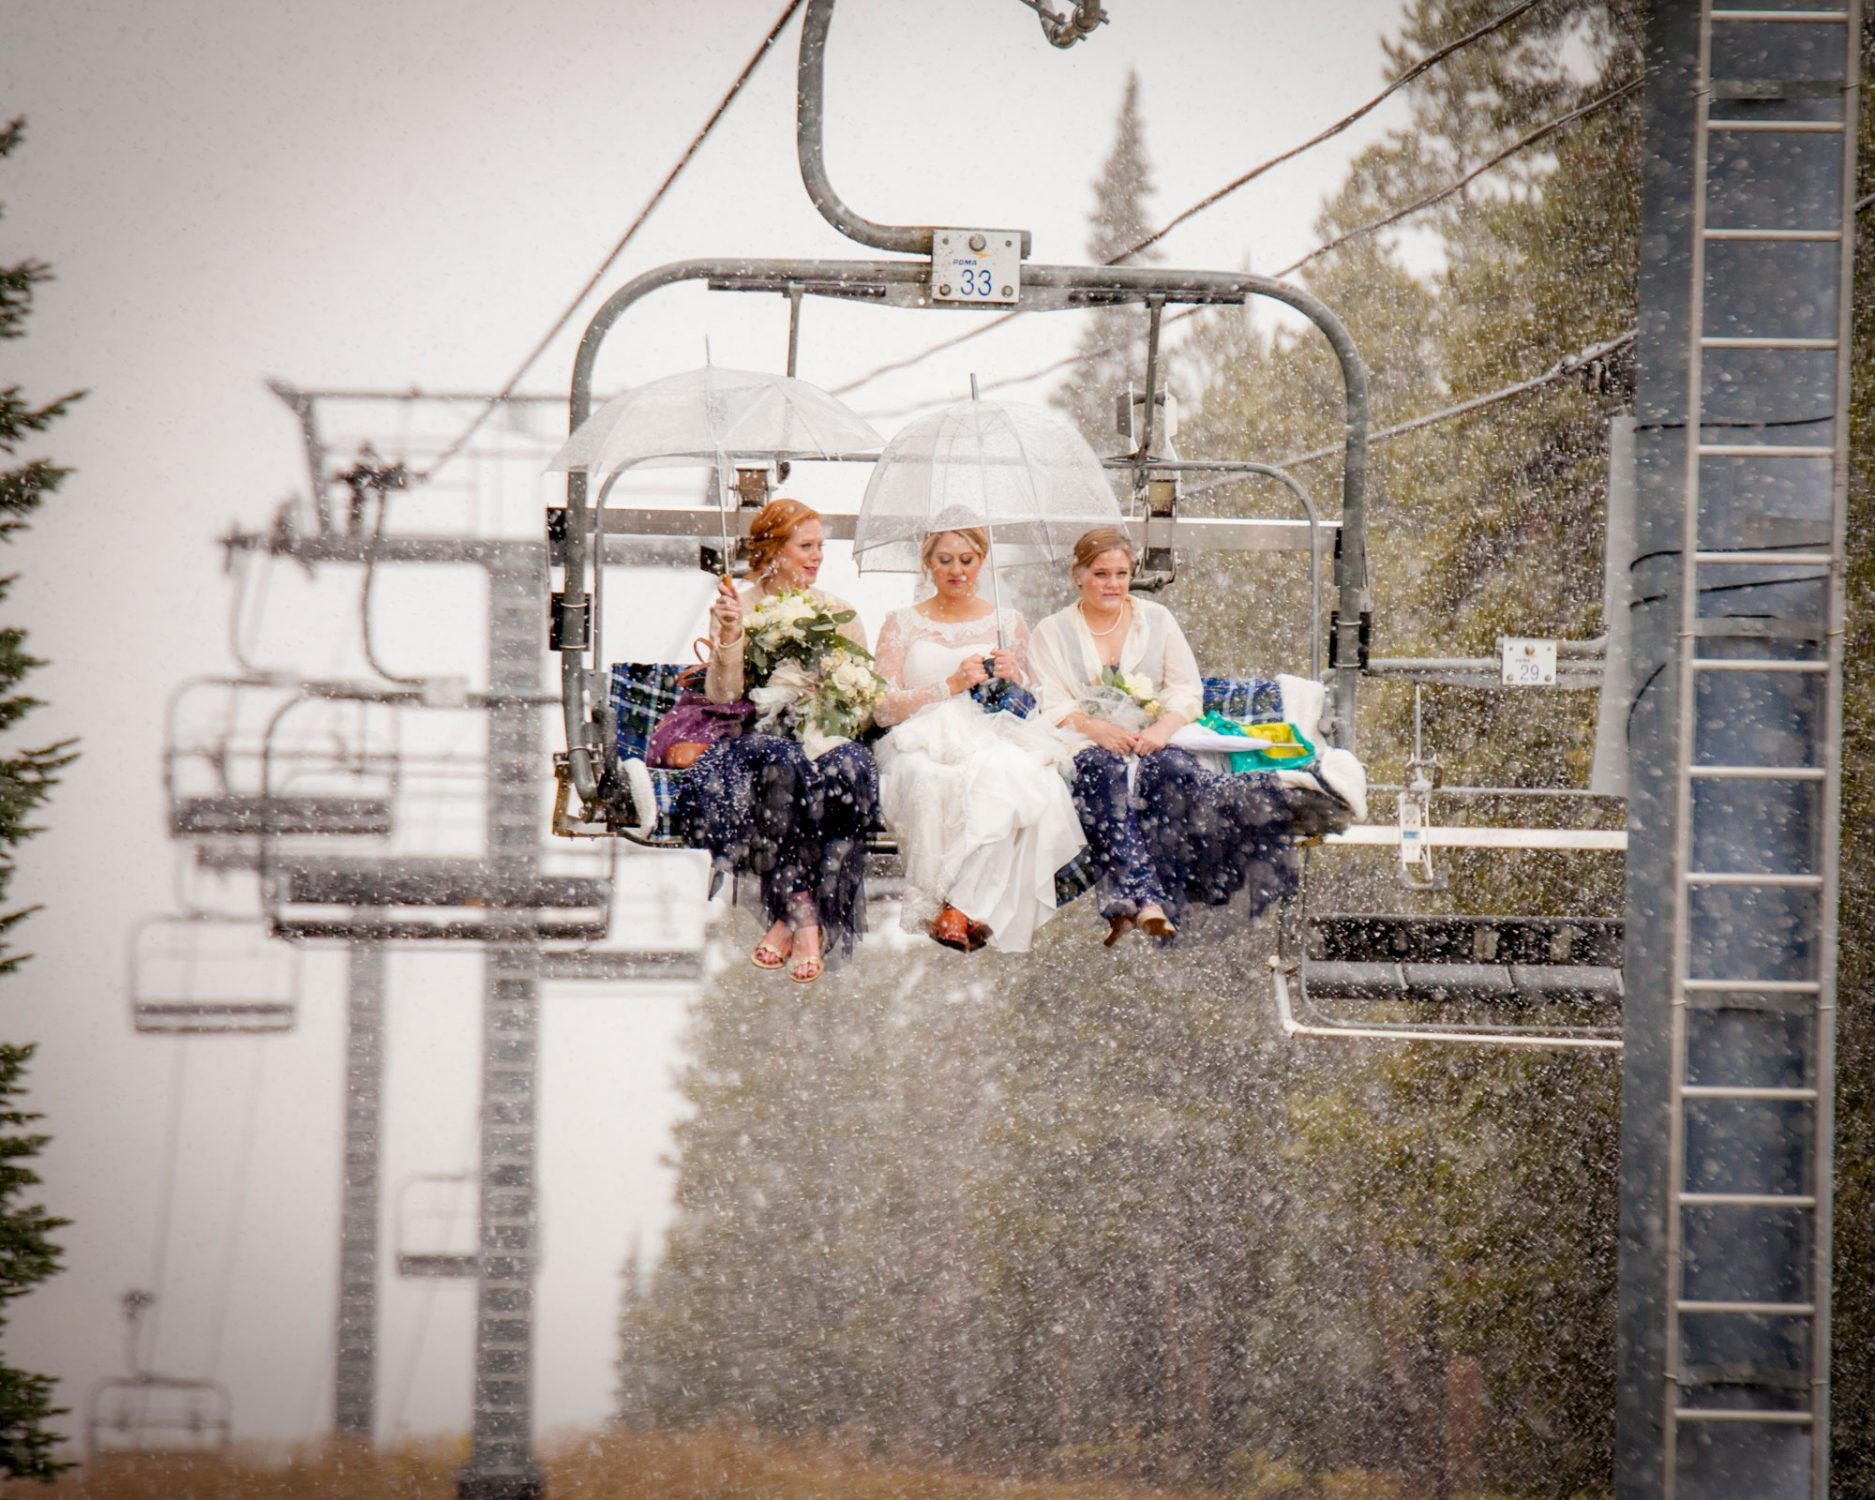 A Snowy Chairlift Ride up to a ceremony site on Mt Crested Butte, Colorado